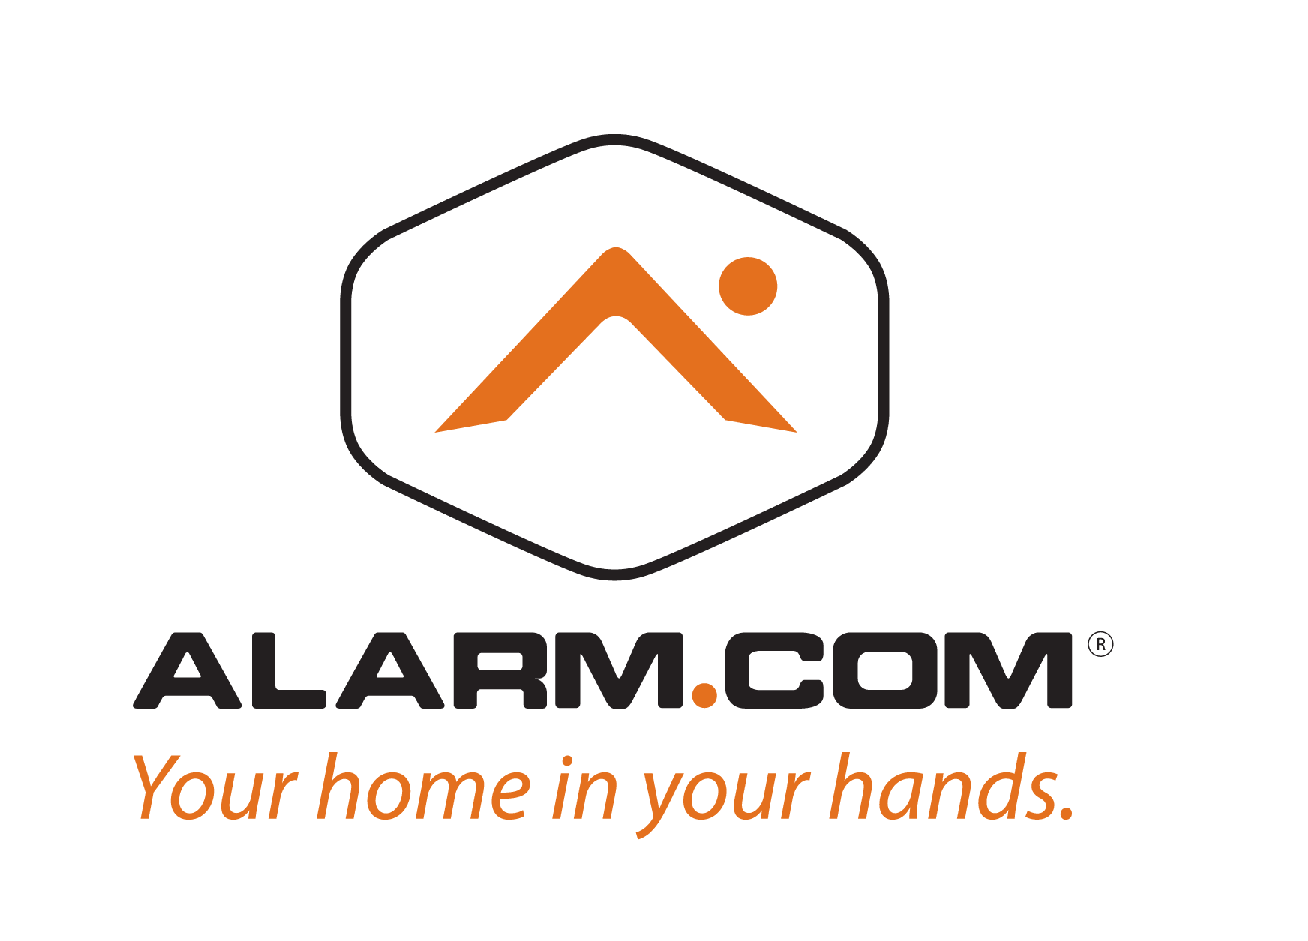 Alarm.com Services and Activation (Required)